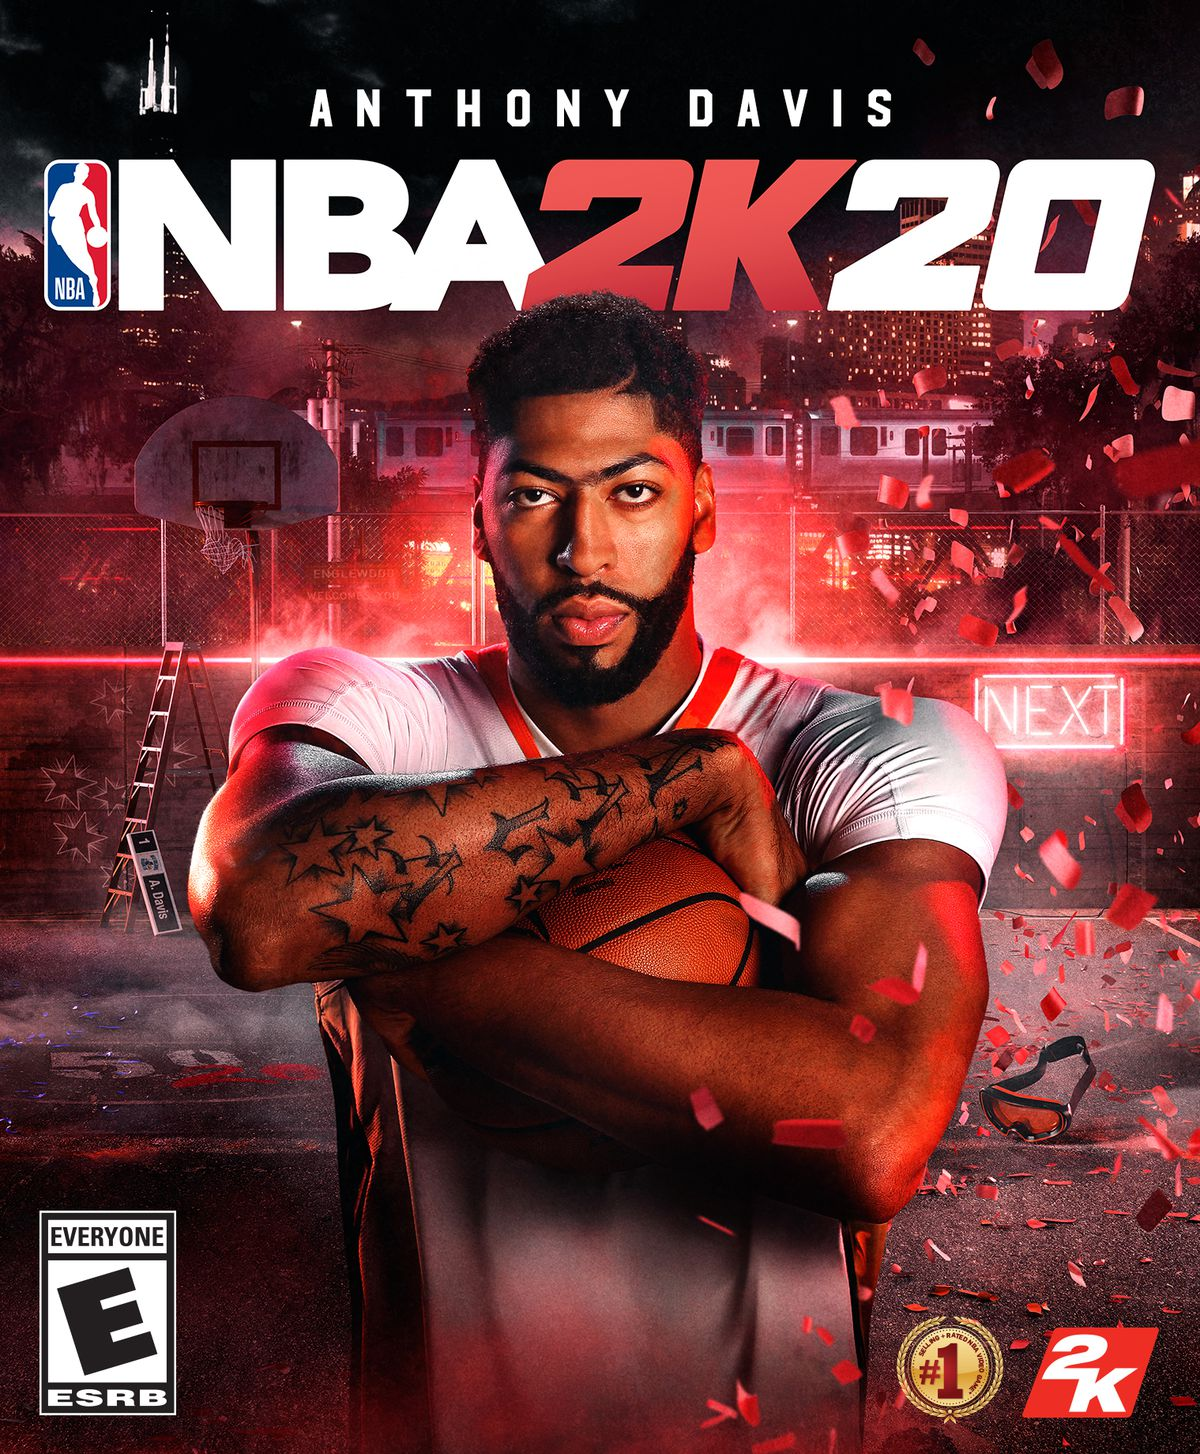 NBA 2K20 cover art featuring Anthony Davis hugging a basketball in front of his chest